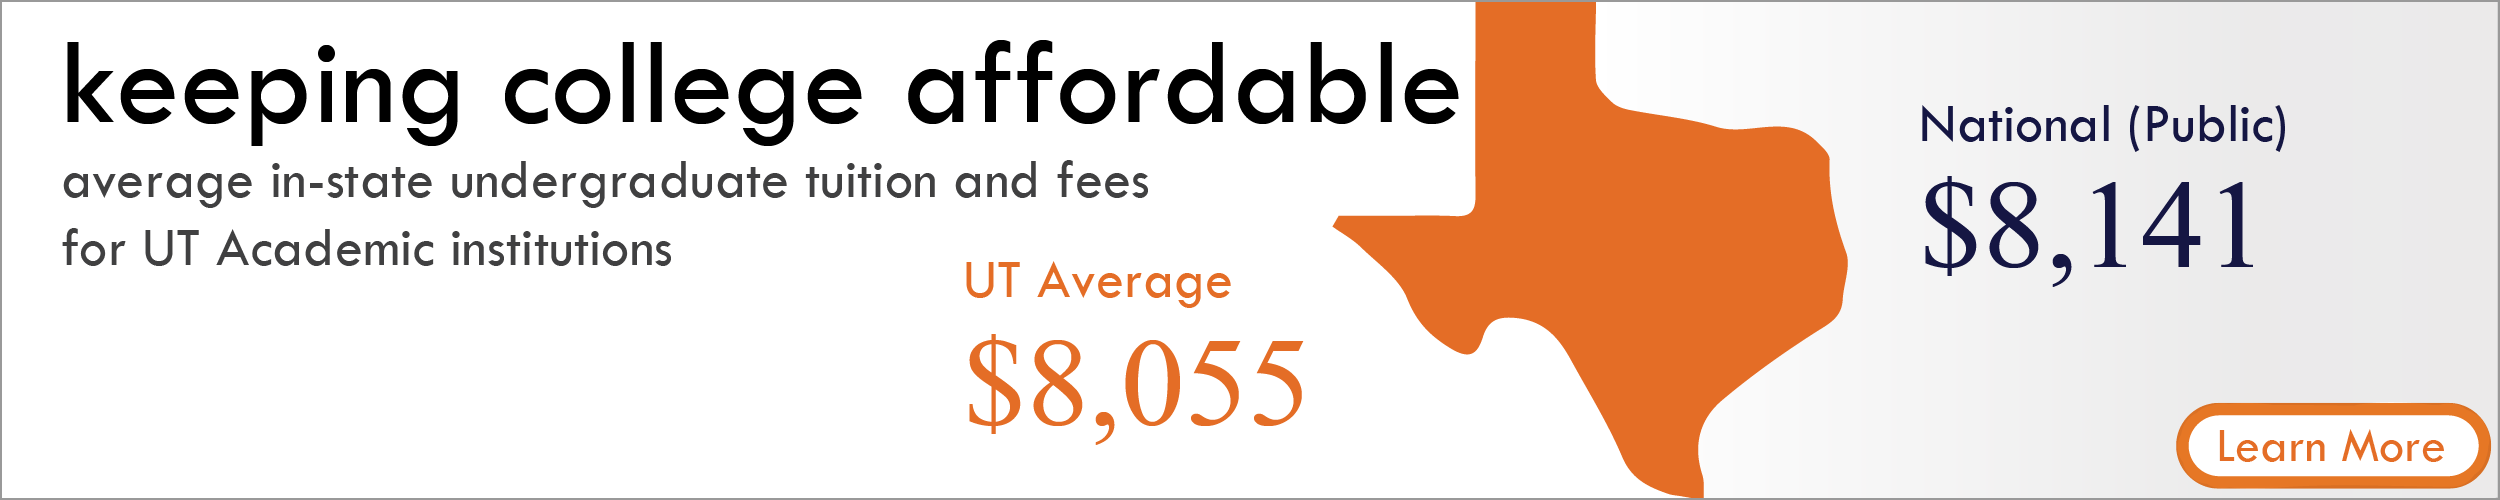 Keeping College Affordable. Average in-state undergraduate tuition and fees for UT academic institutions is $8,055; National Public institutions is $8,141. Learn more.